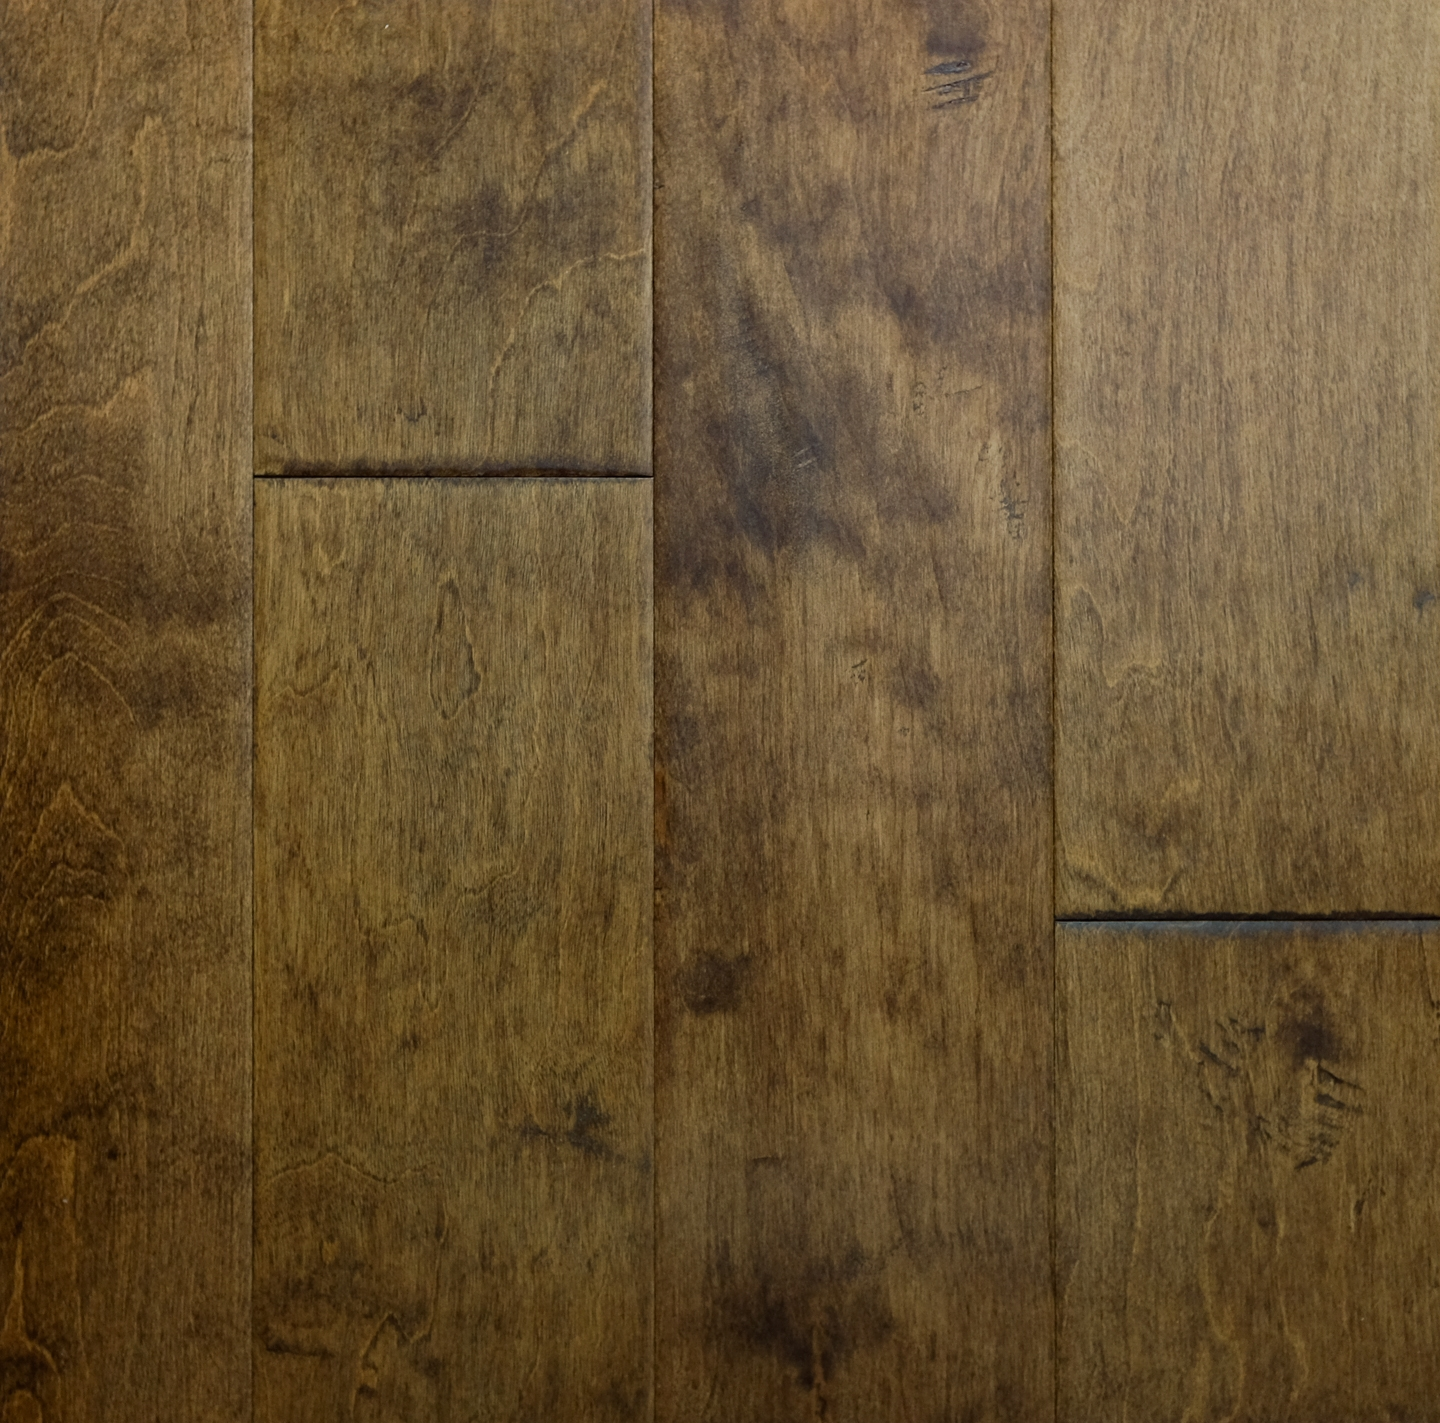 Shamrock Engineered Wood Flooring